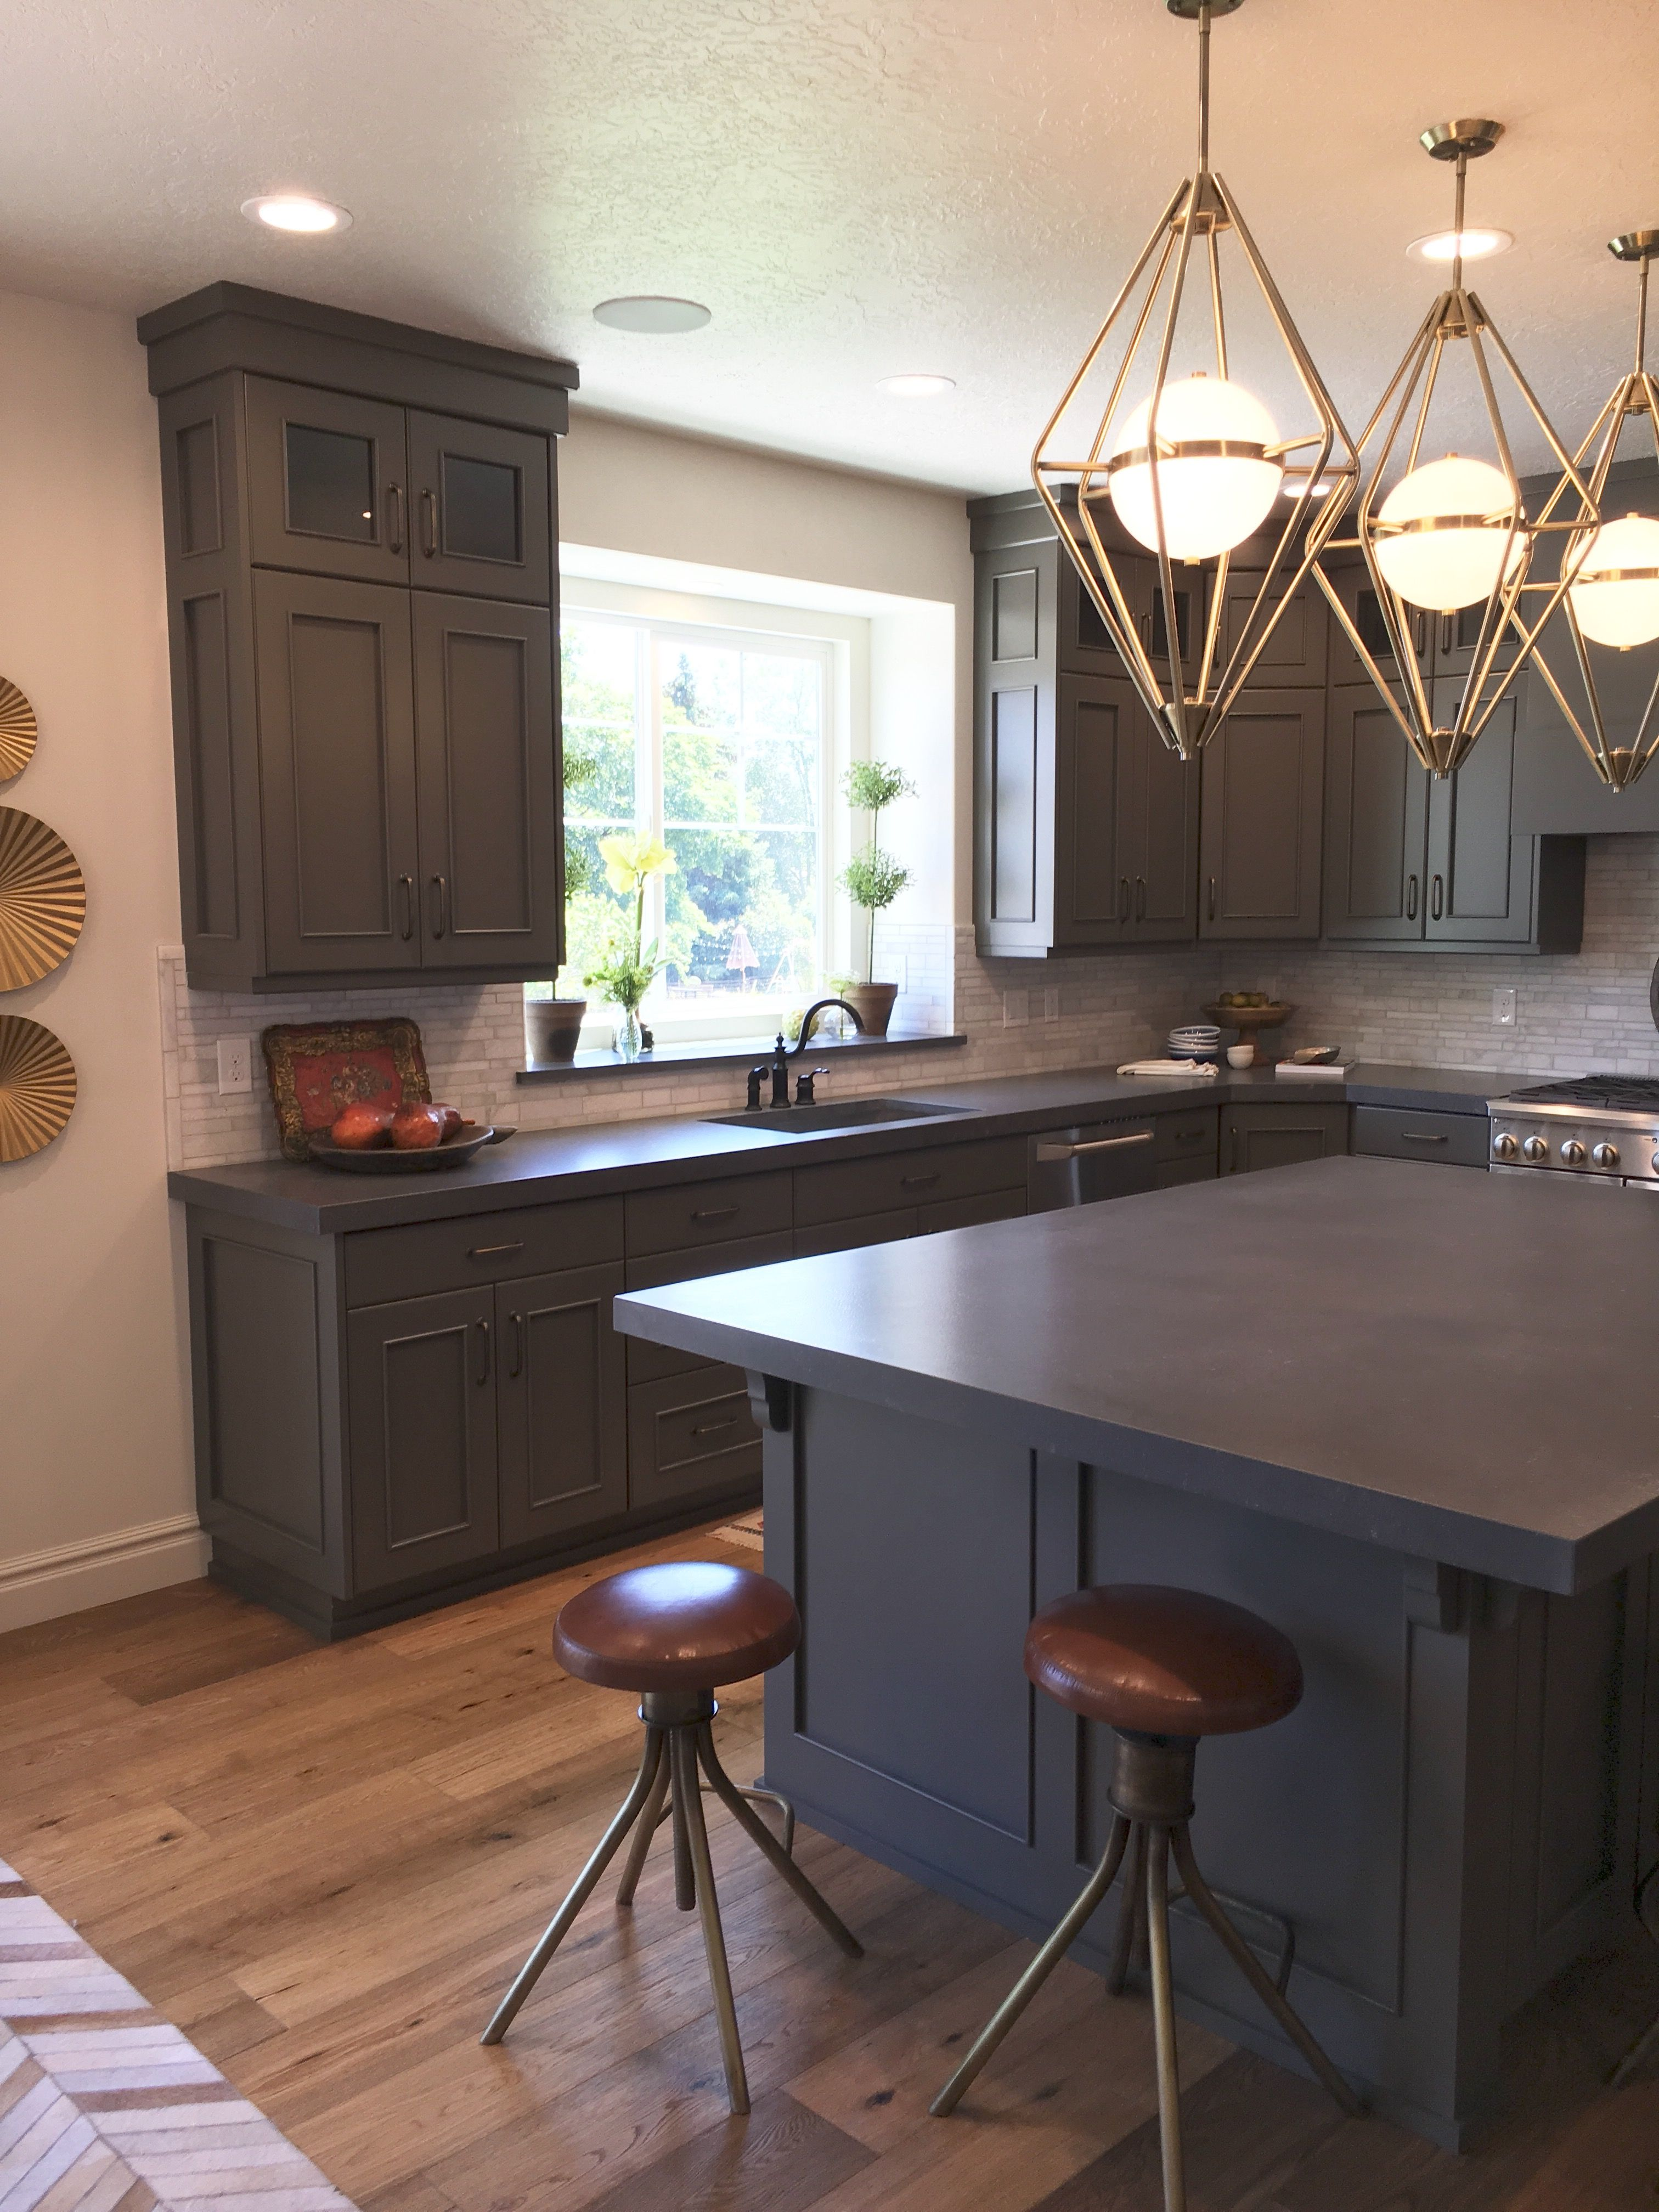 top of cabinets to extend to the ceiling kitchen cabinets to ceiling cabinets to ceiling on kitchen cabinets to the ceiling id=86985